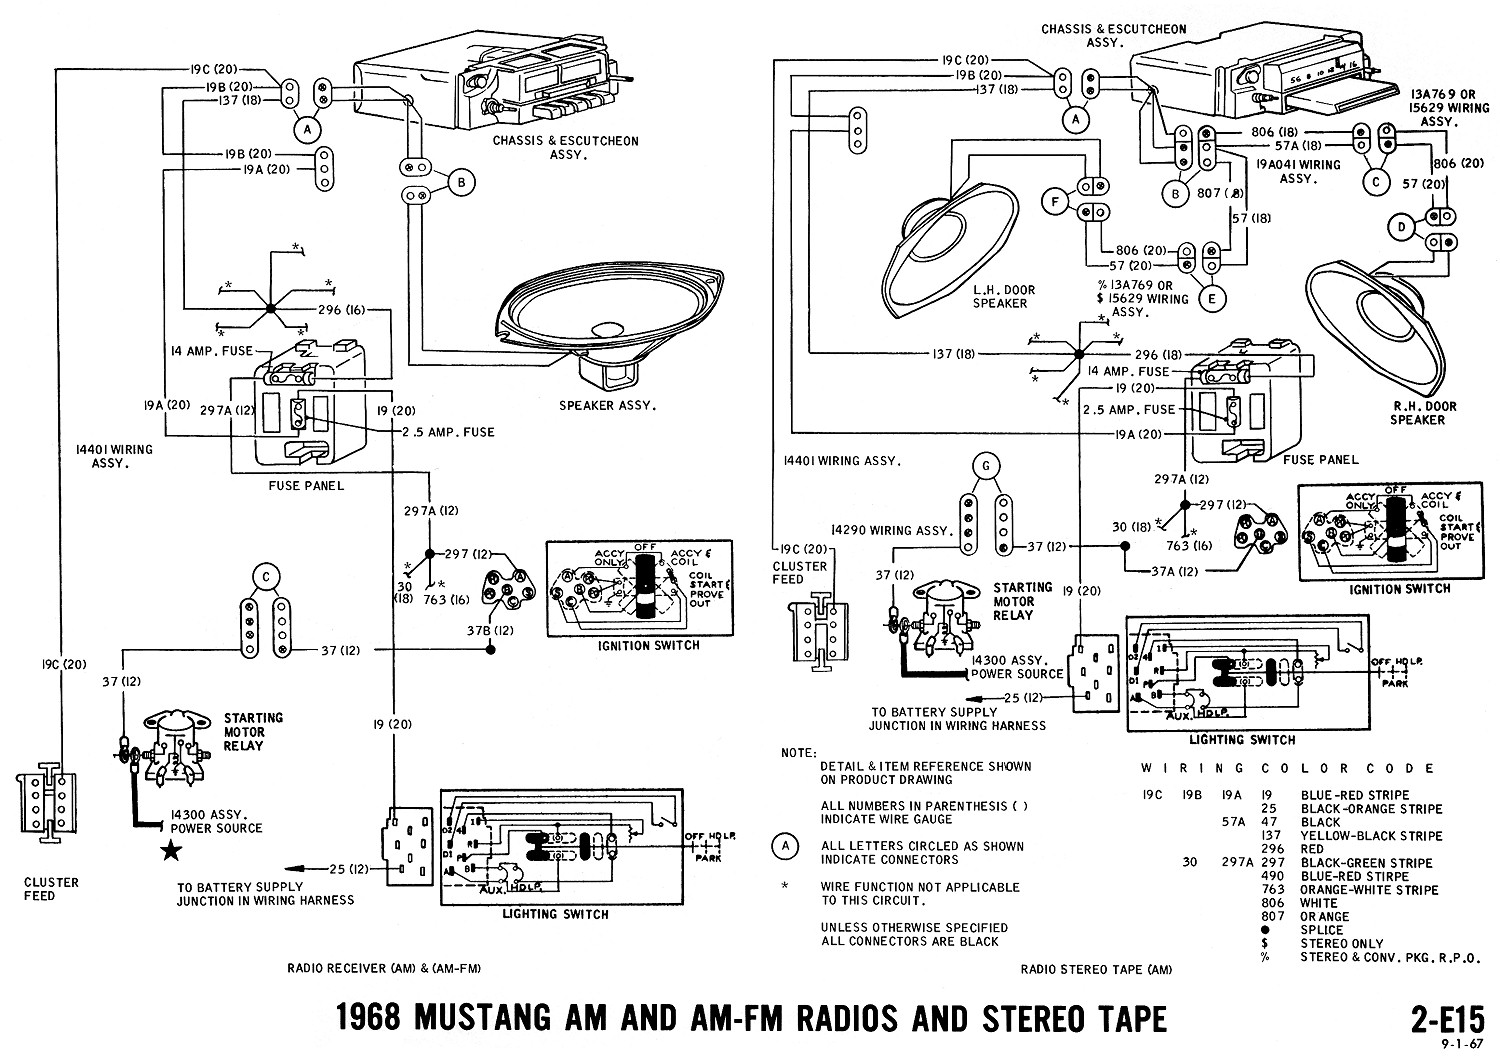 1968 mustang wiring diagrams evolving software 2010 camaro stereo wiring diagram #13